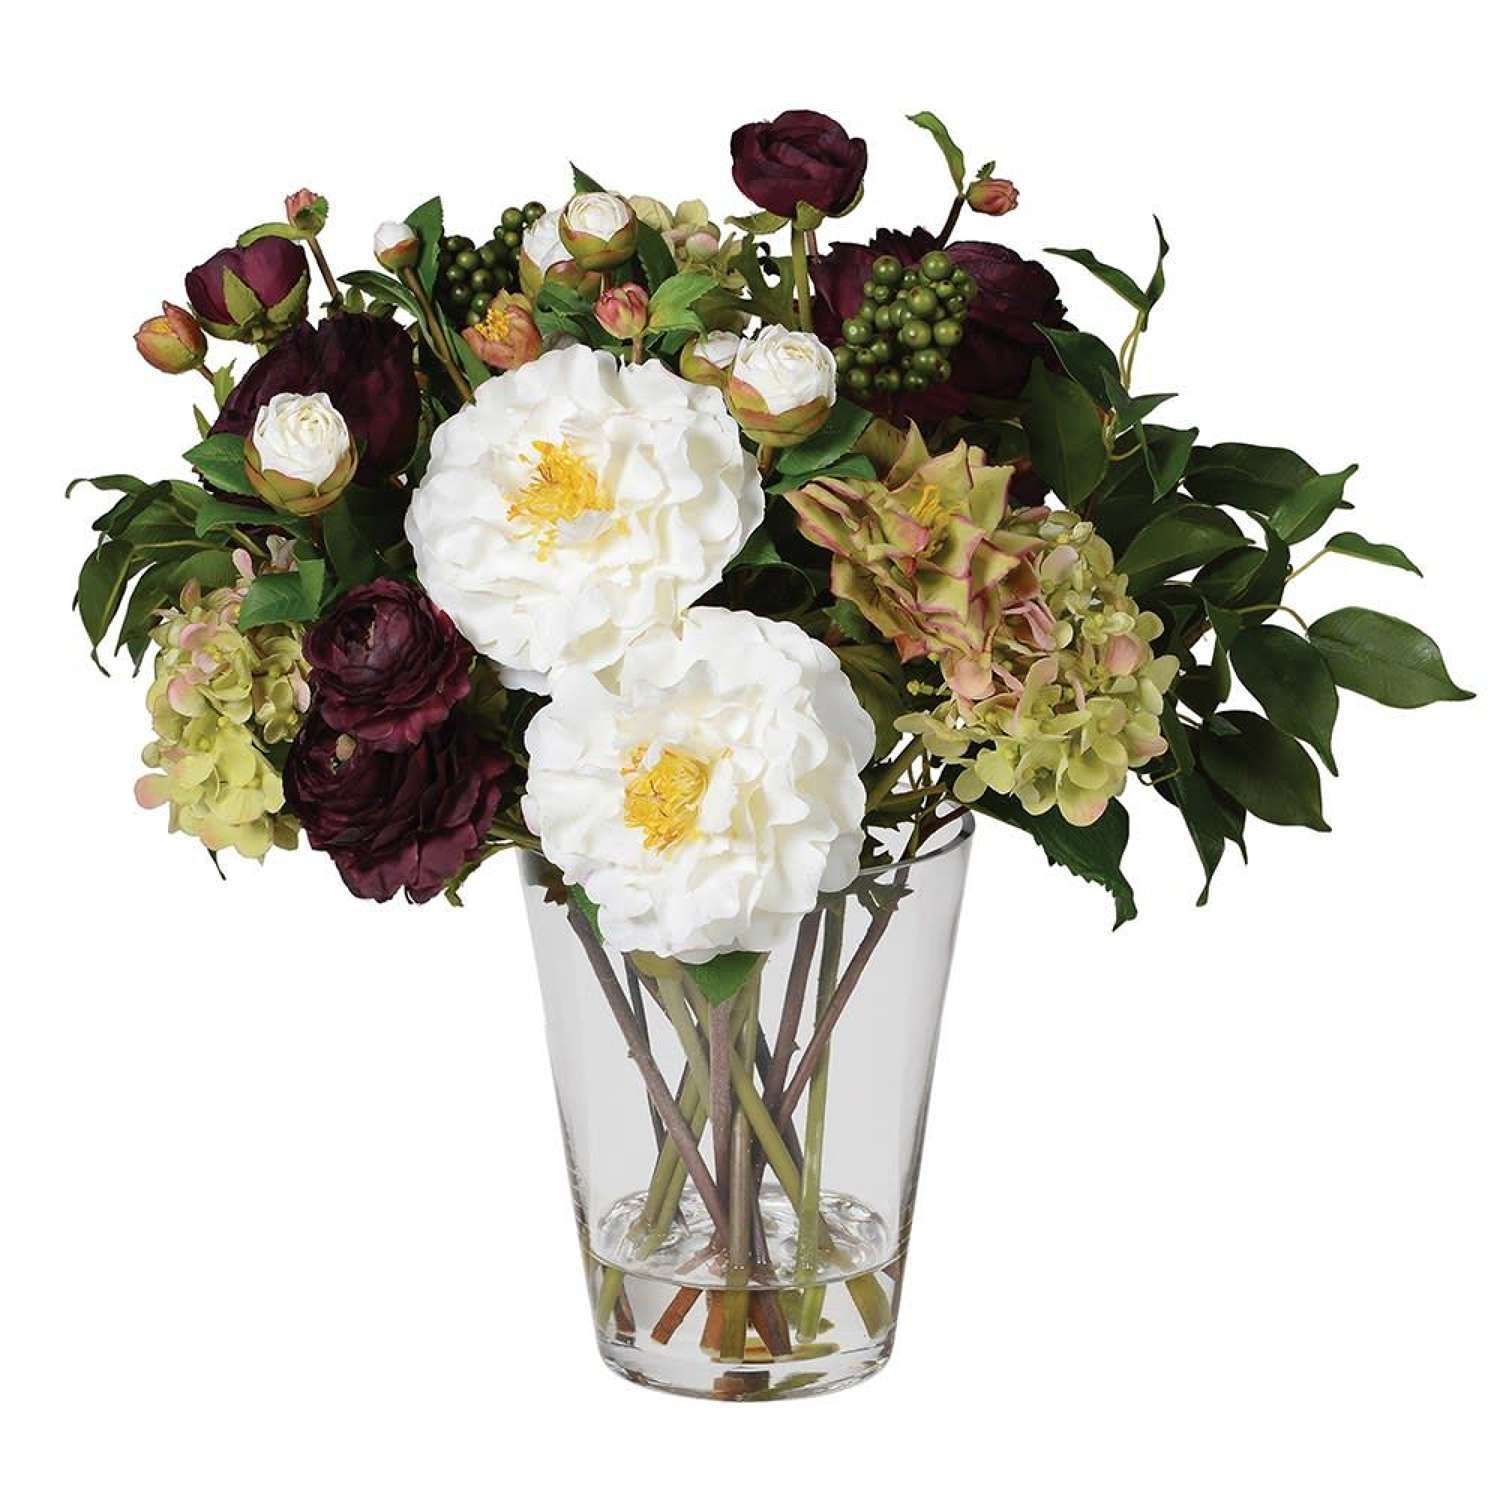 Ruby, White & Greens Floral Arrangement in Glass Vase